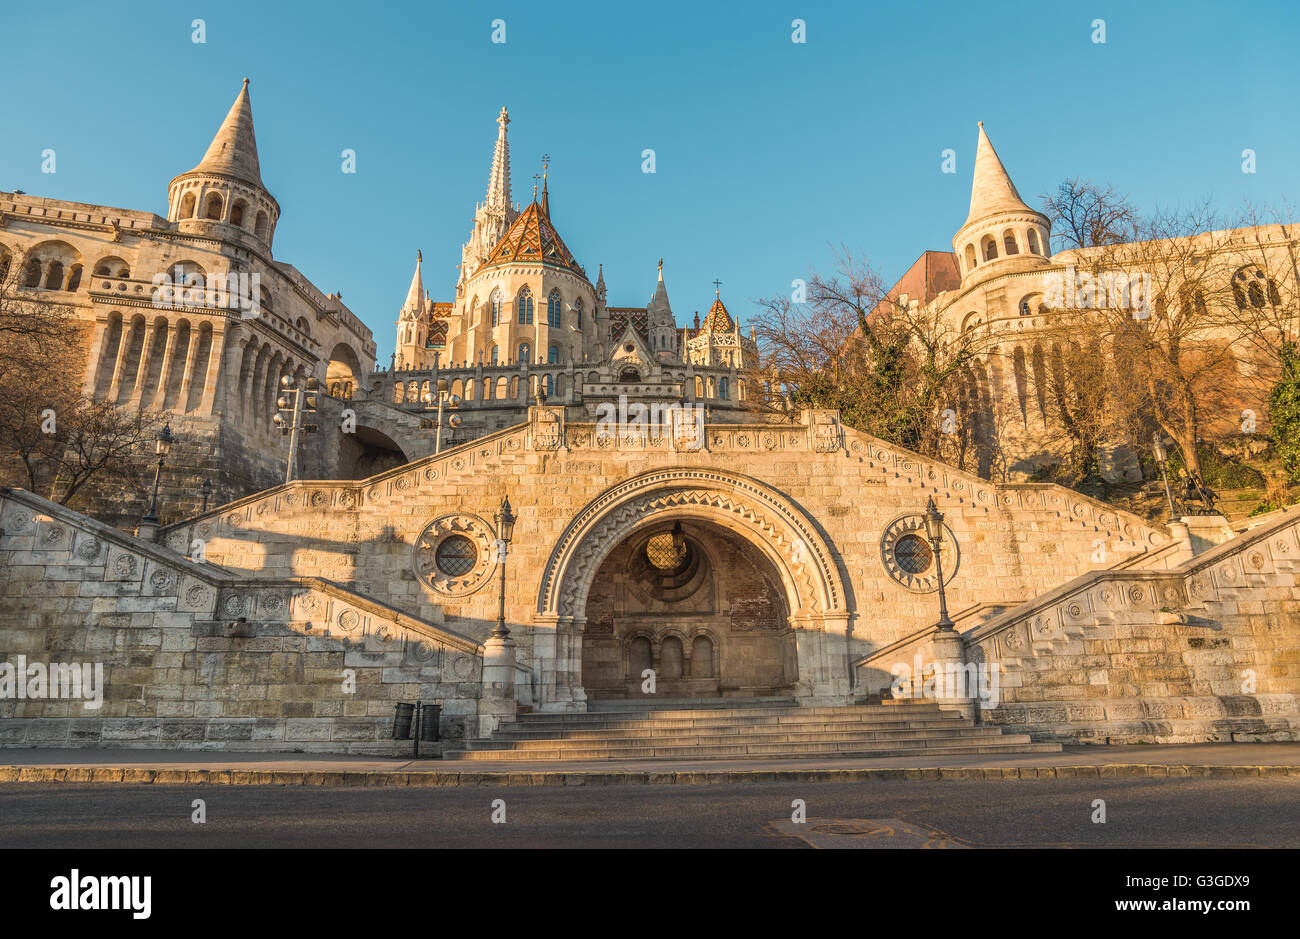 Sunlit Fisherman's Bastion in Budapest, Hungary at Sunrise. View from below. - Stock Image